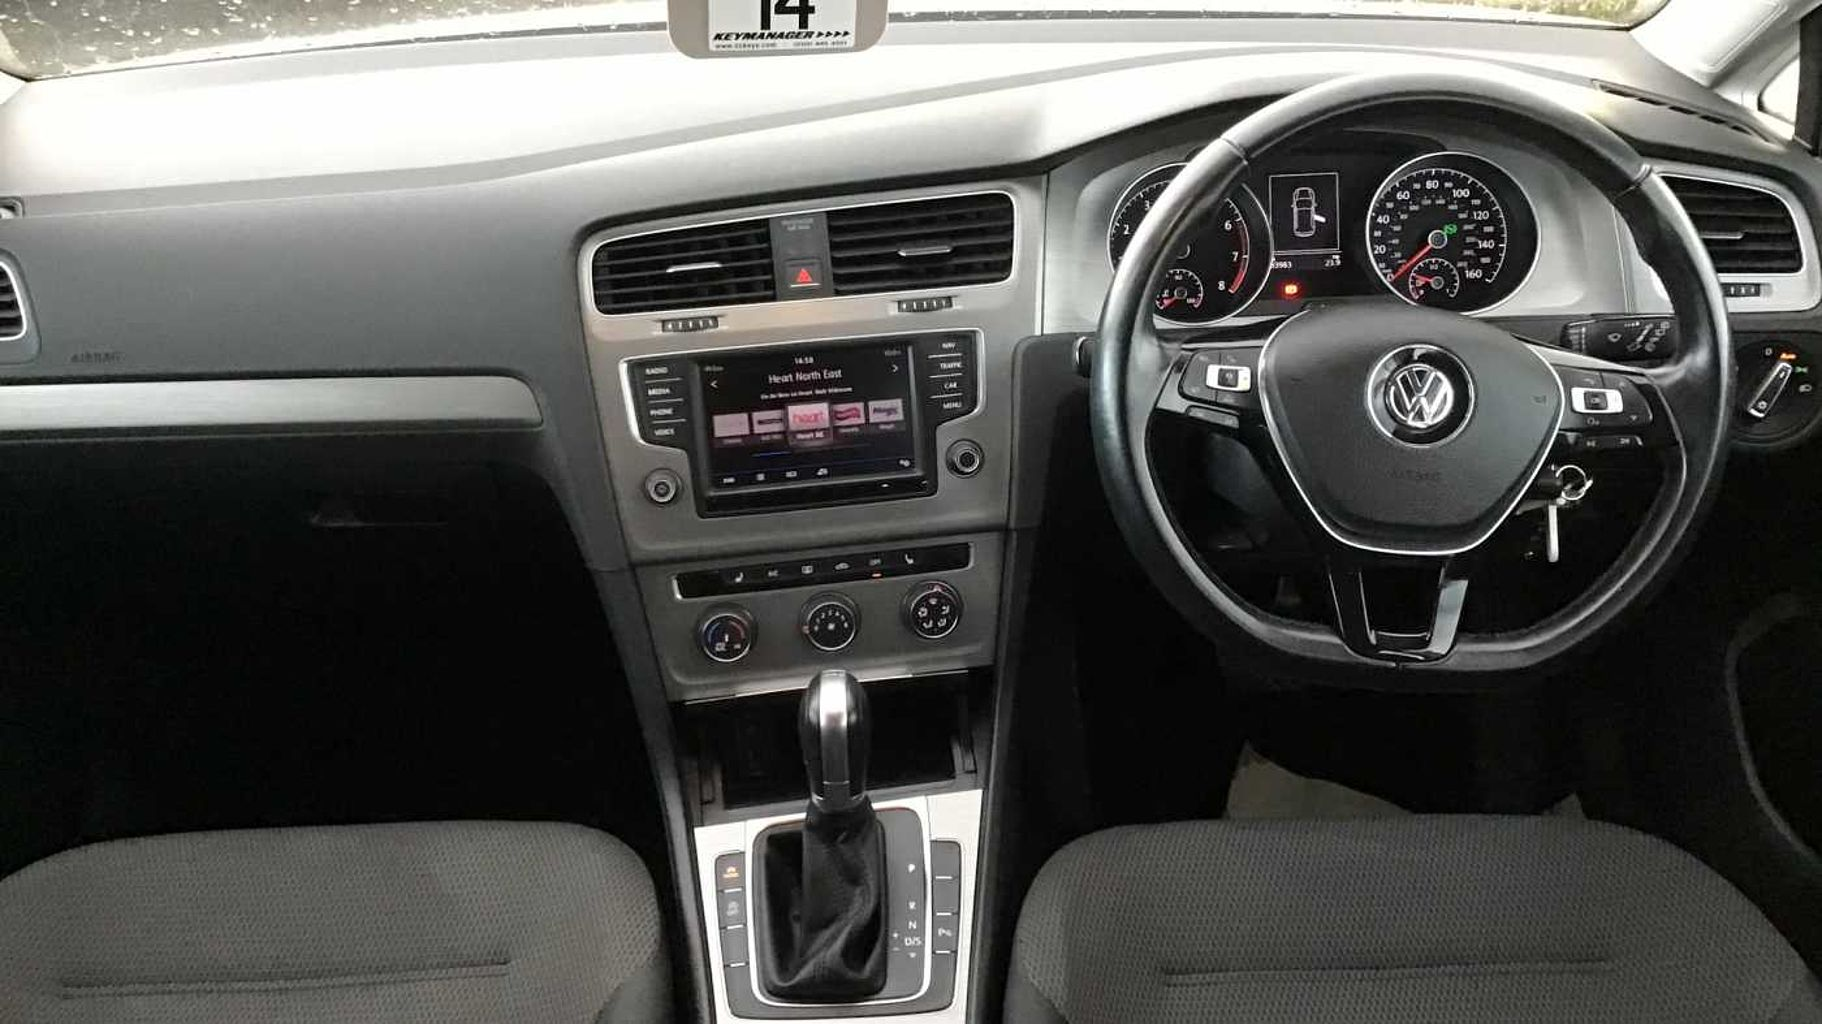 Volkswagen Golf 1.4 TSI 125 Match Edition 5dr DSG Petrol Hatchback